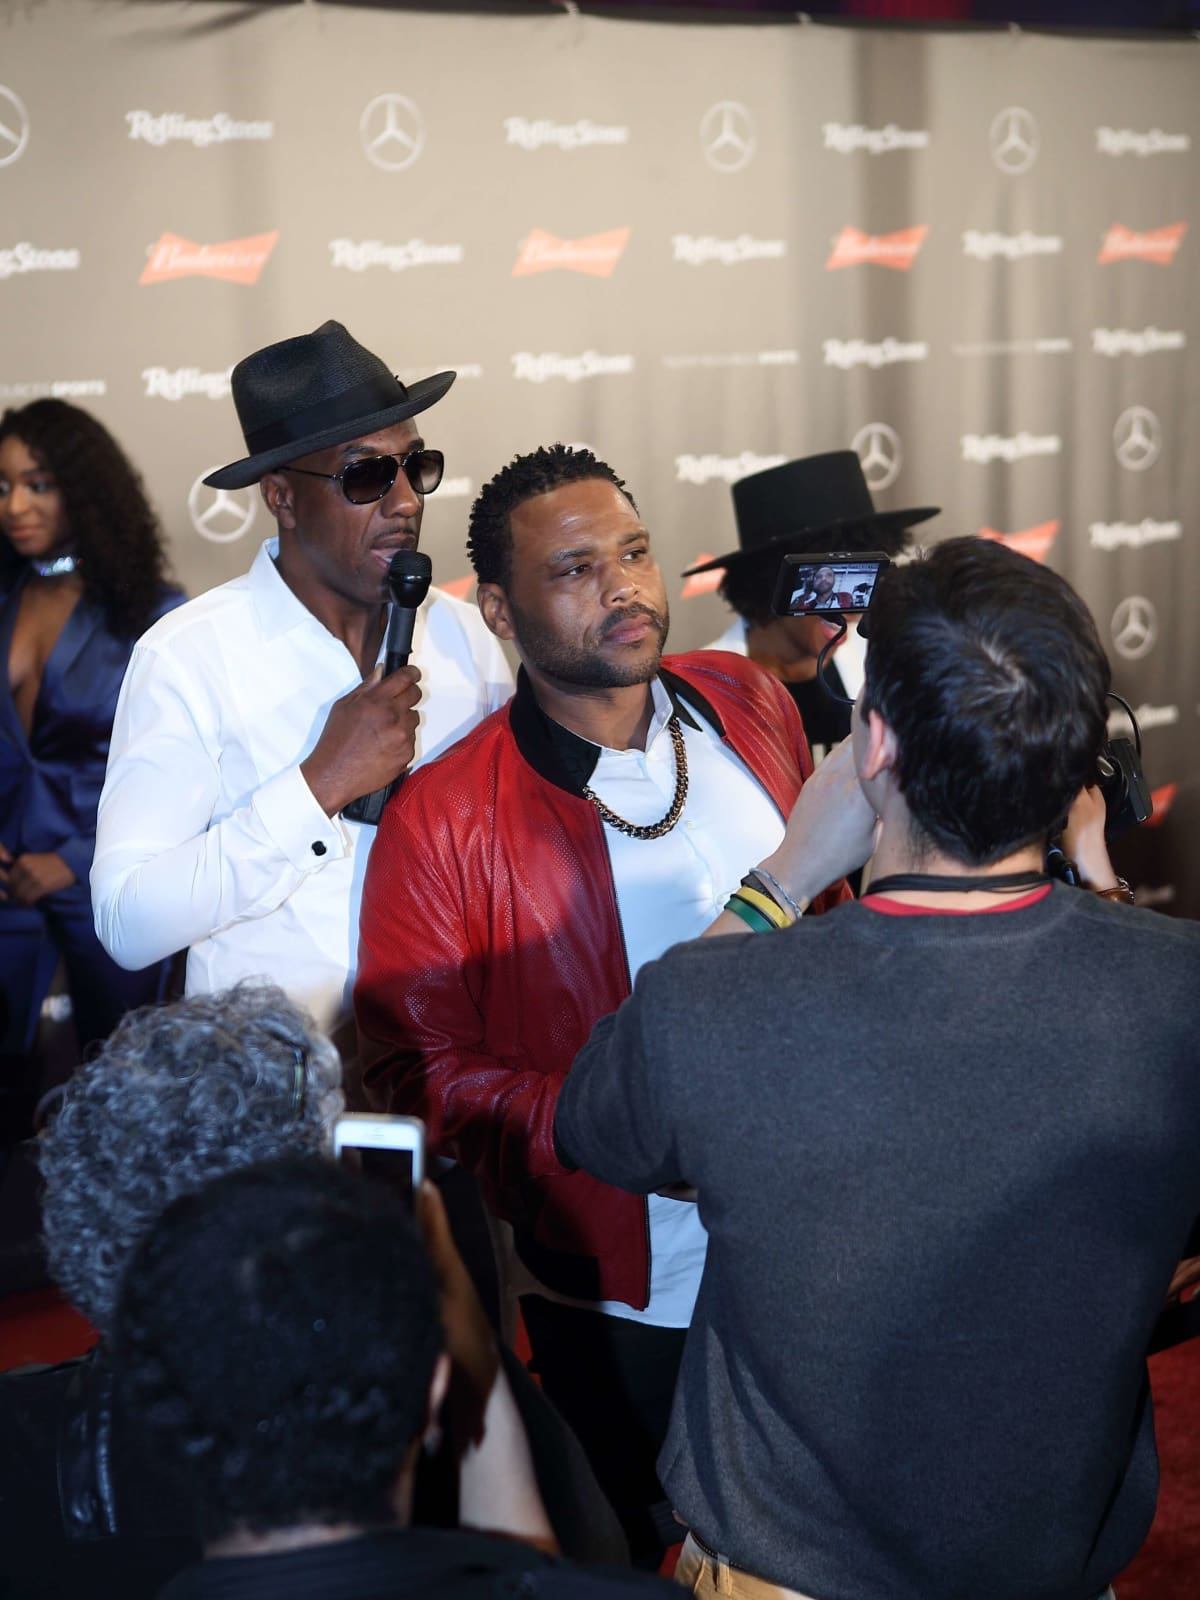 JB Smoove, Anthony Anderson at Rolling Stone party